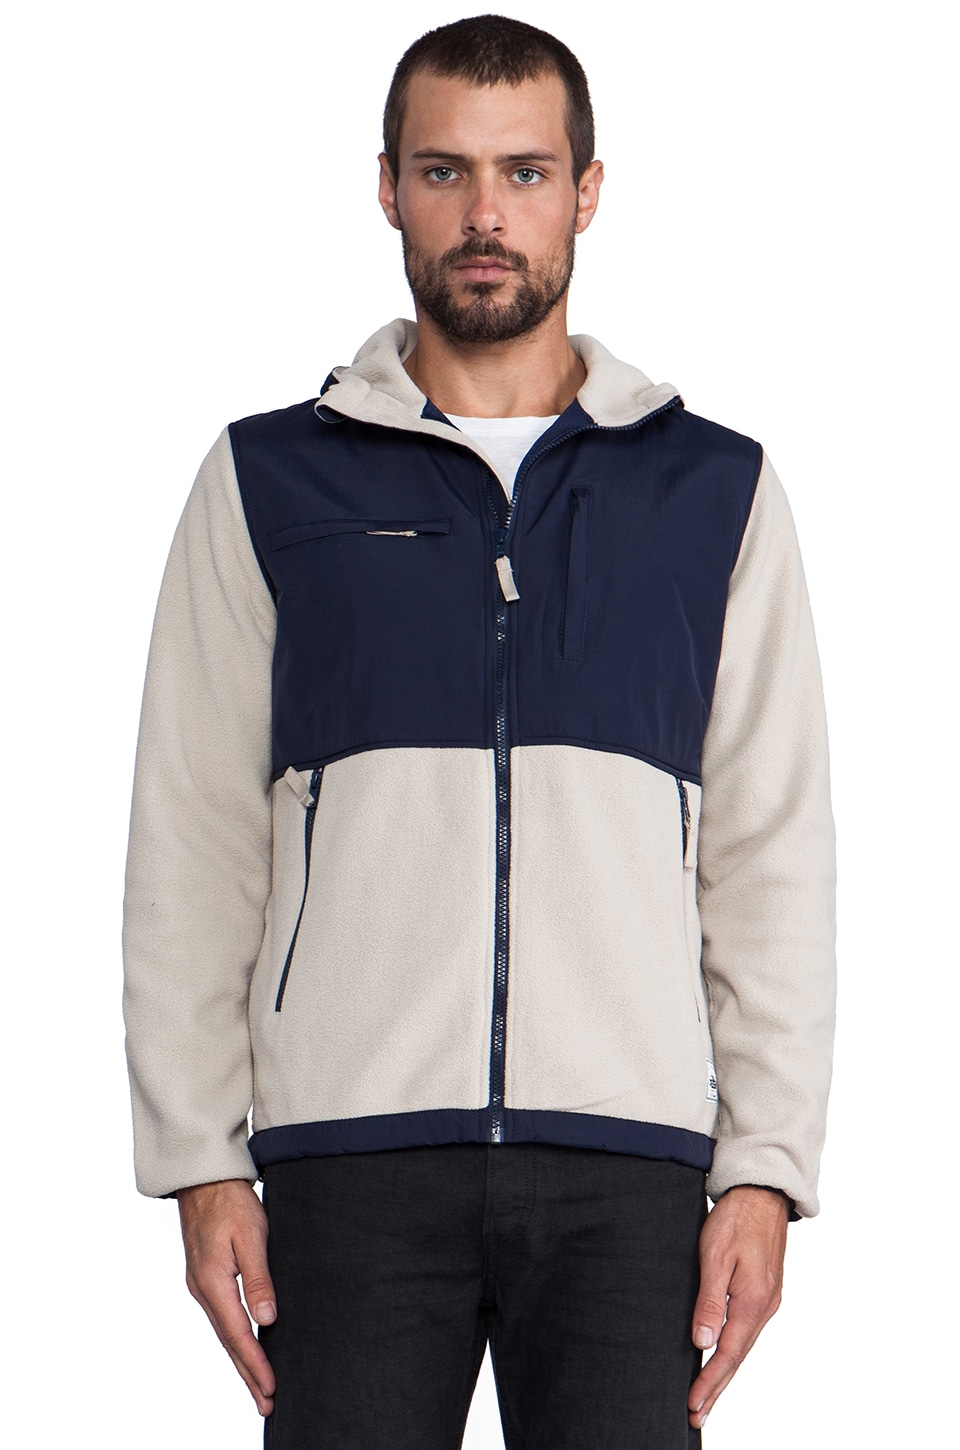 Penfield Salton Fleece Jacket in Ecru